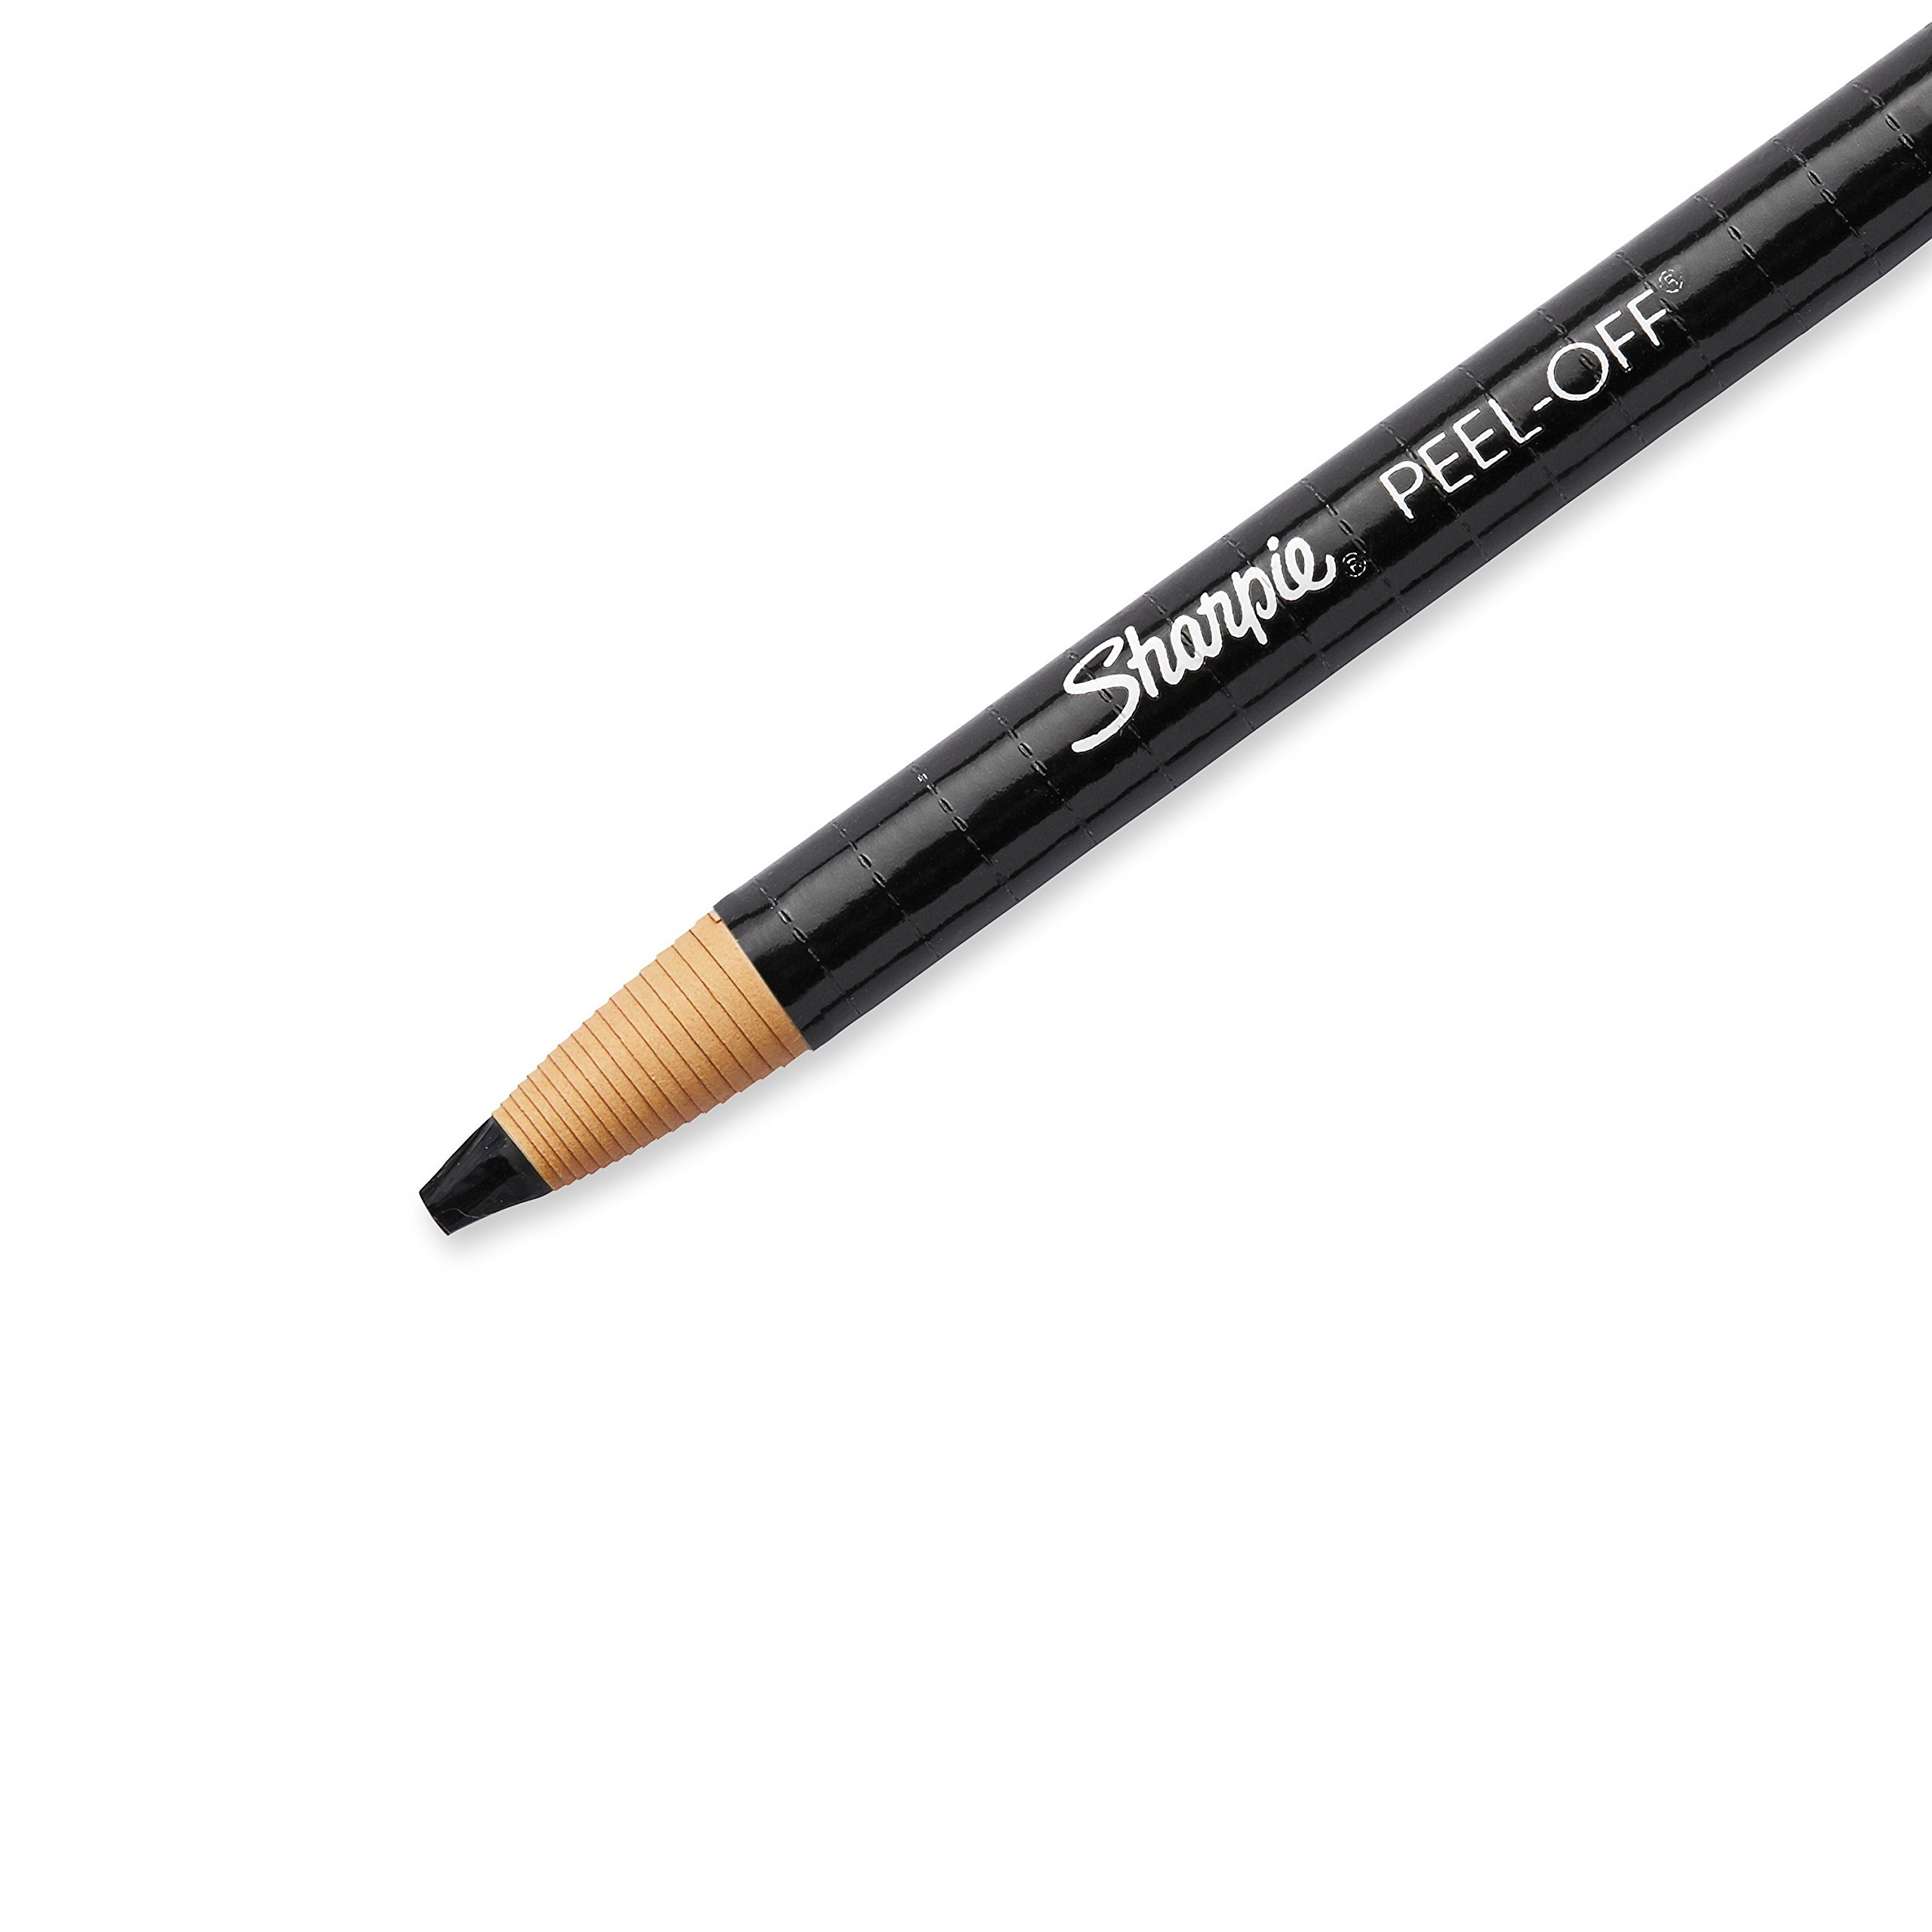 Sharpie 2173PP Peel-Off China Markers, Black, 2-Count by Sharpie (Image #3)